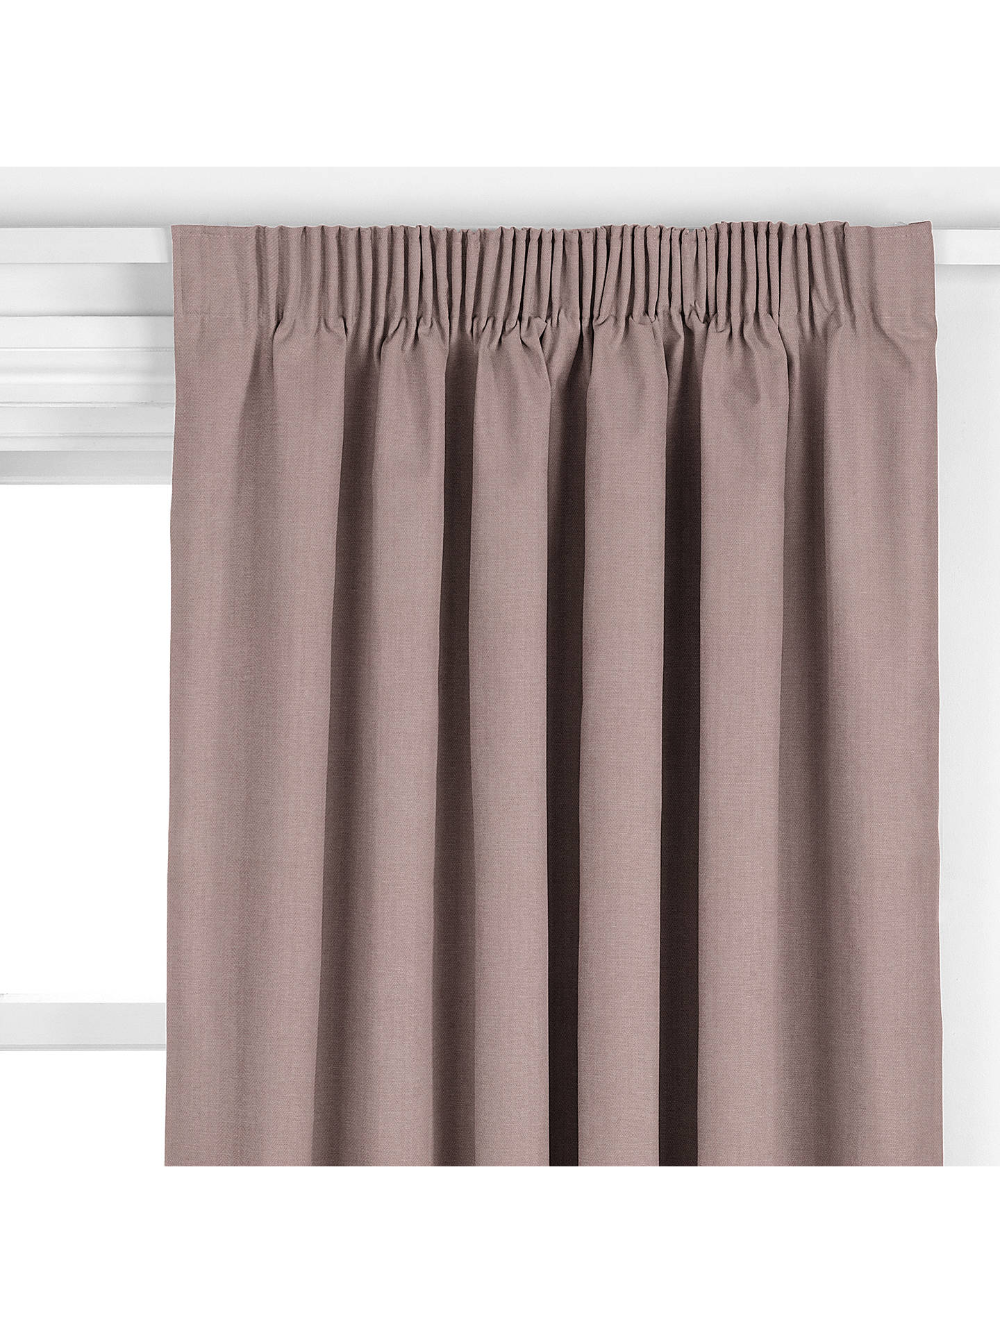 John Lewis Amp Partners Herringbone Made To Measure Curtains